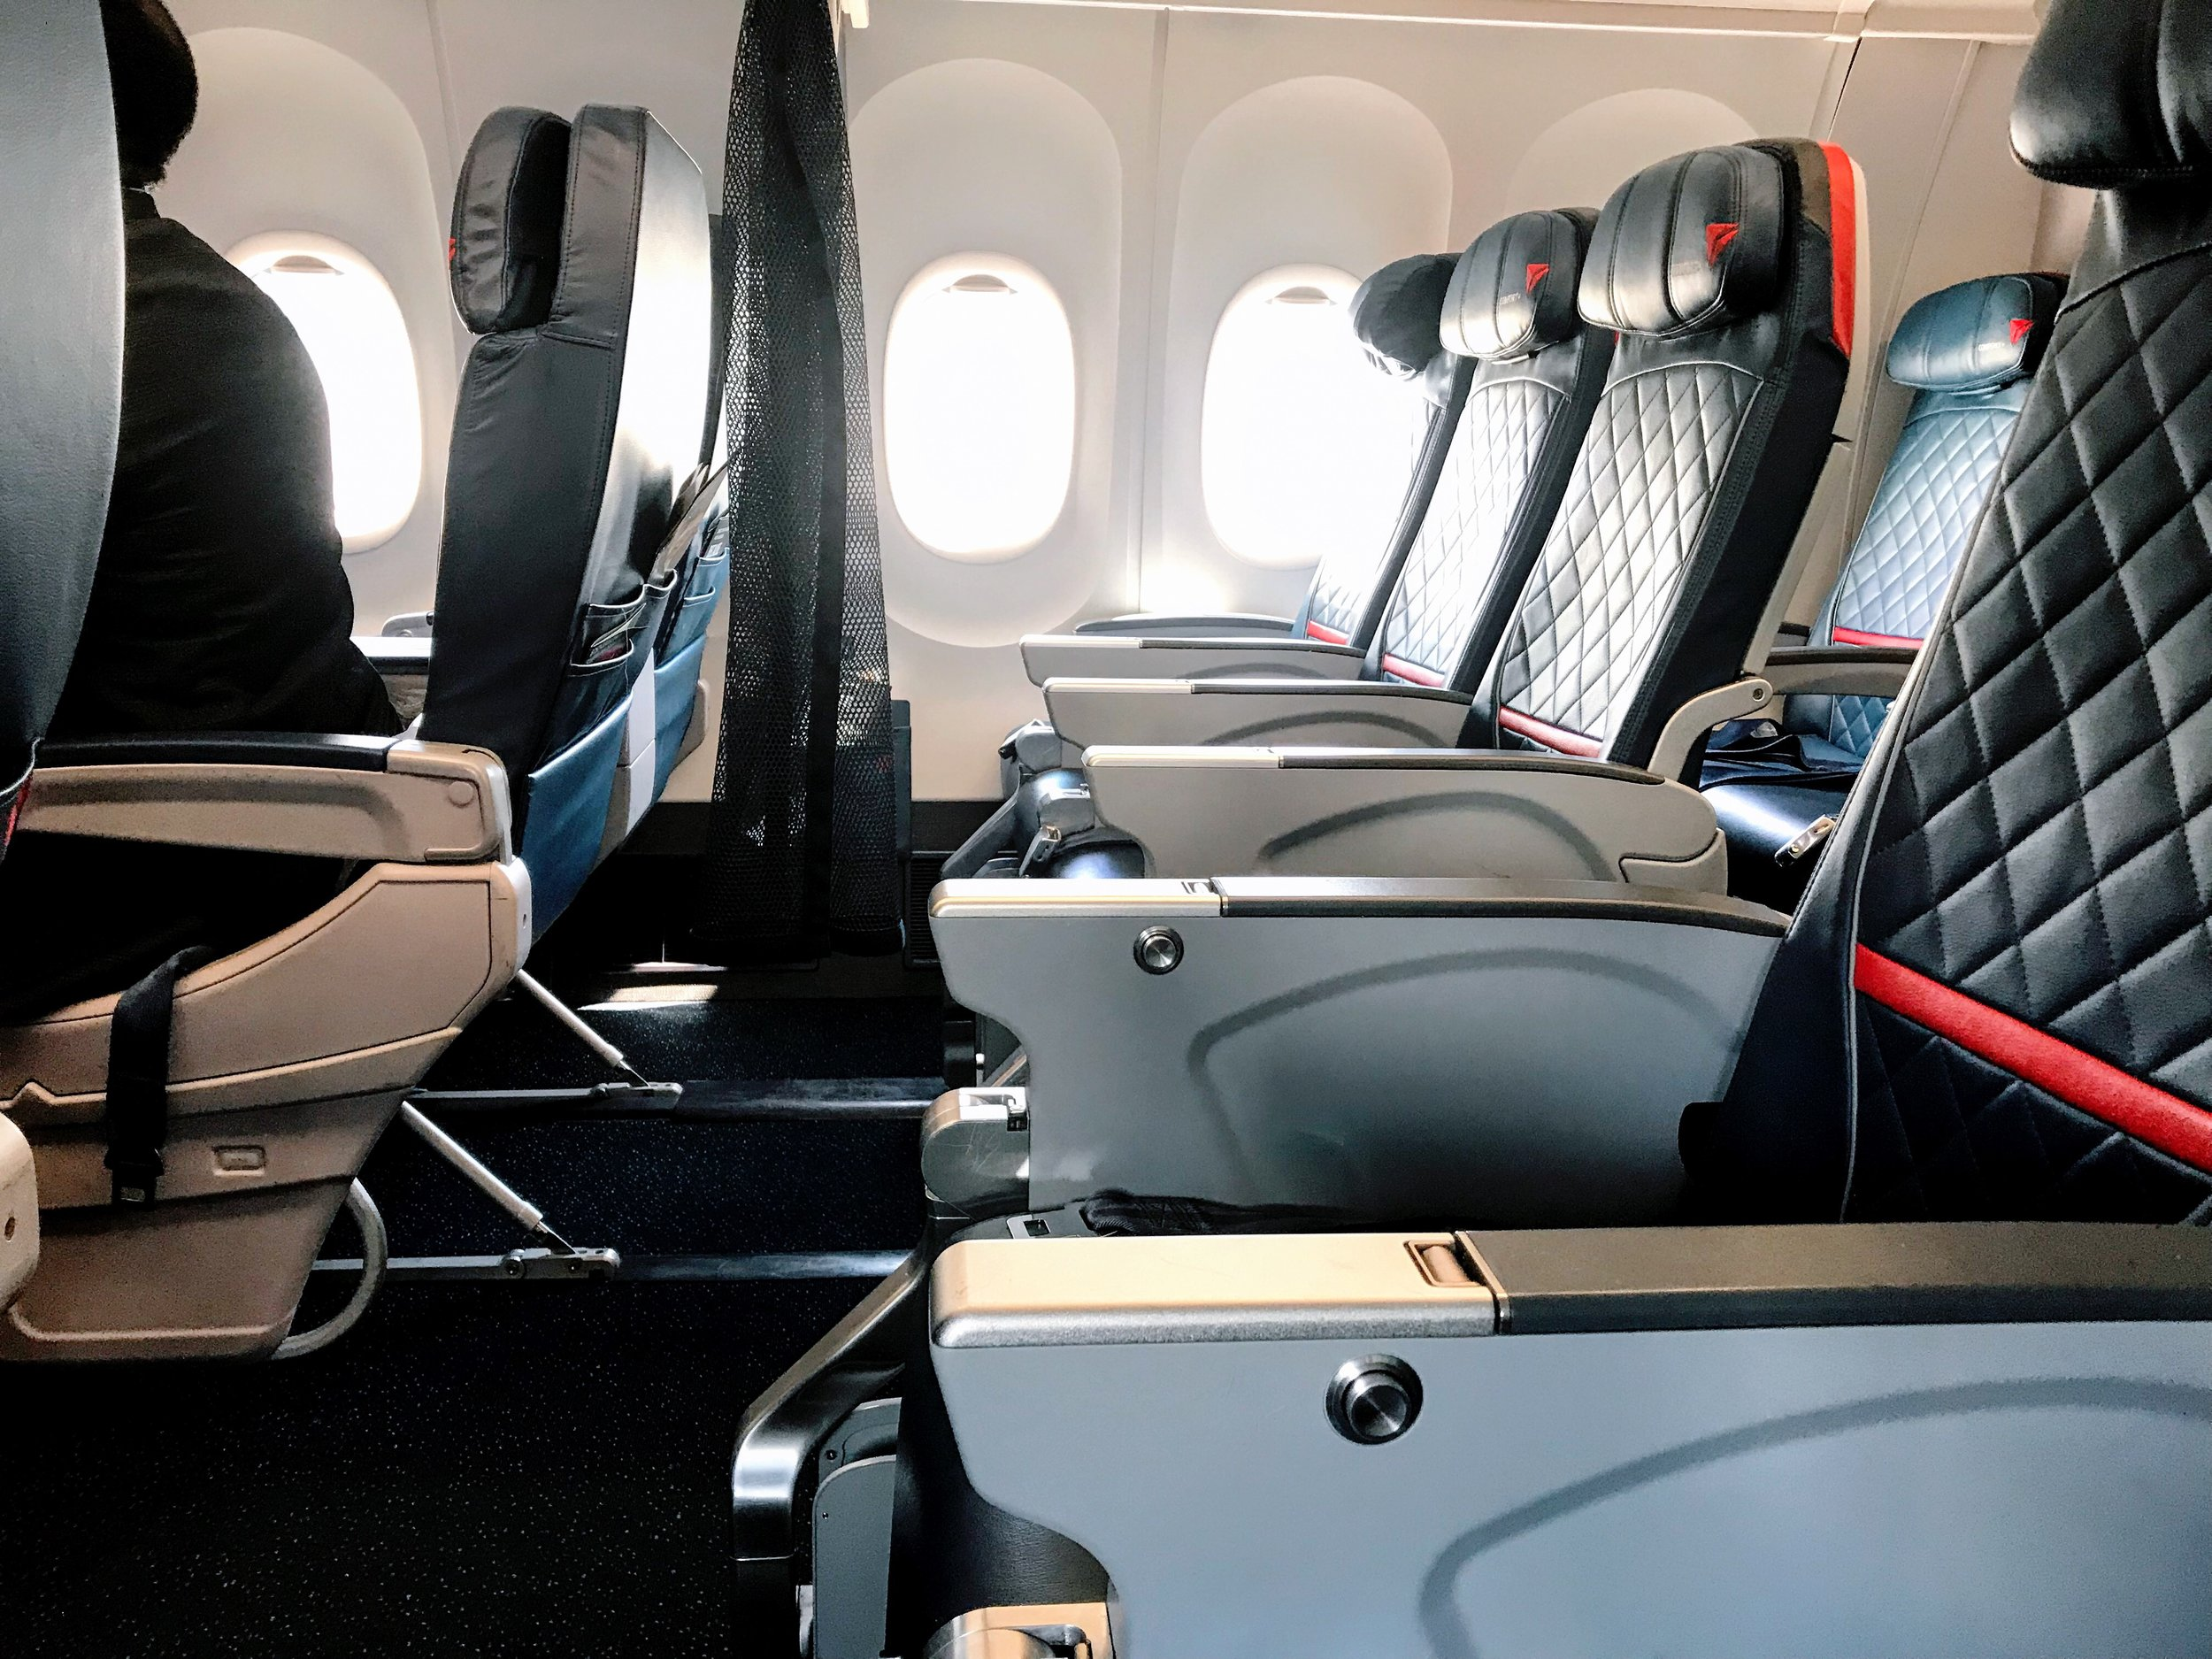 The first row of Delta Comfort+ features additional legroom due to the lack of a hard bulkhead behind the last row of First Class seats. Try to snag these seats if at all possible.